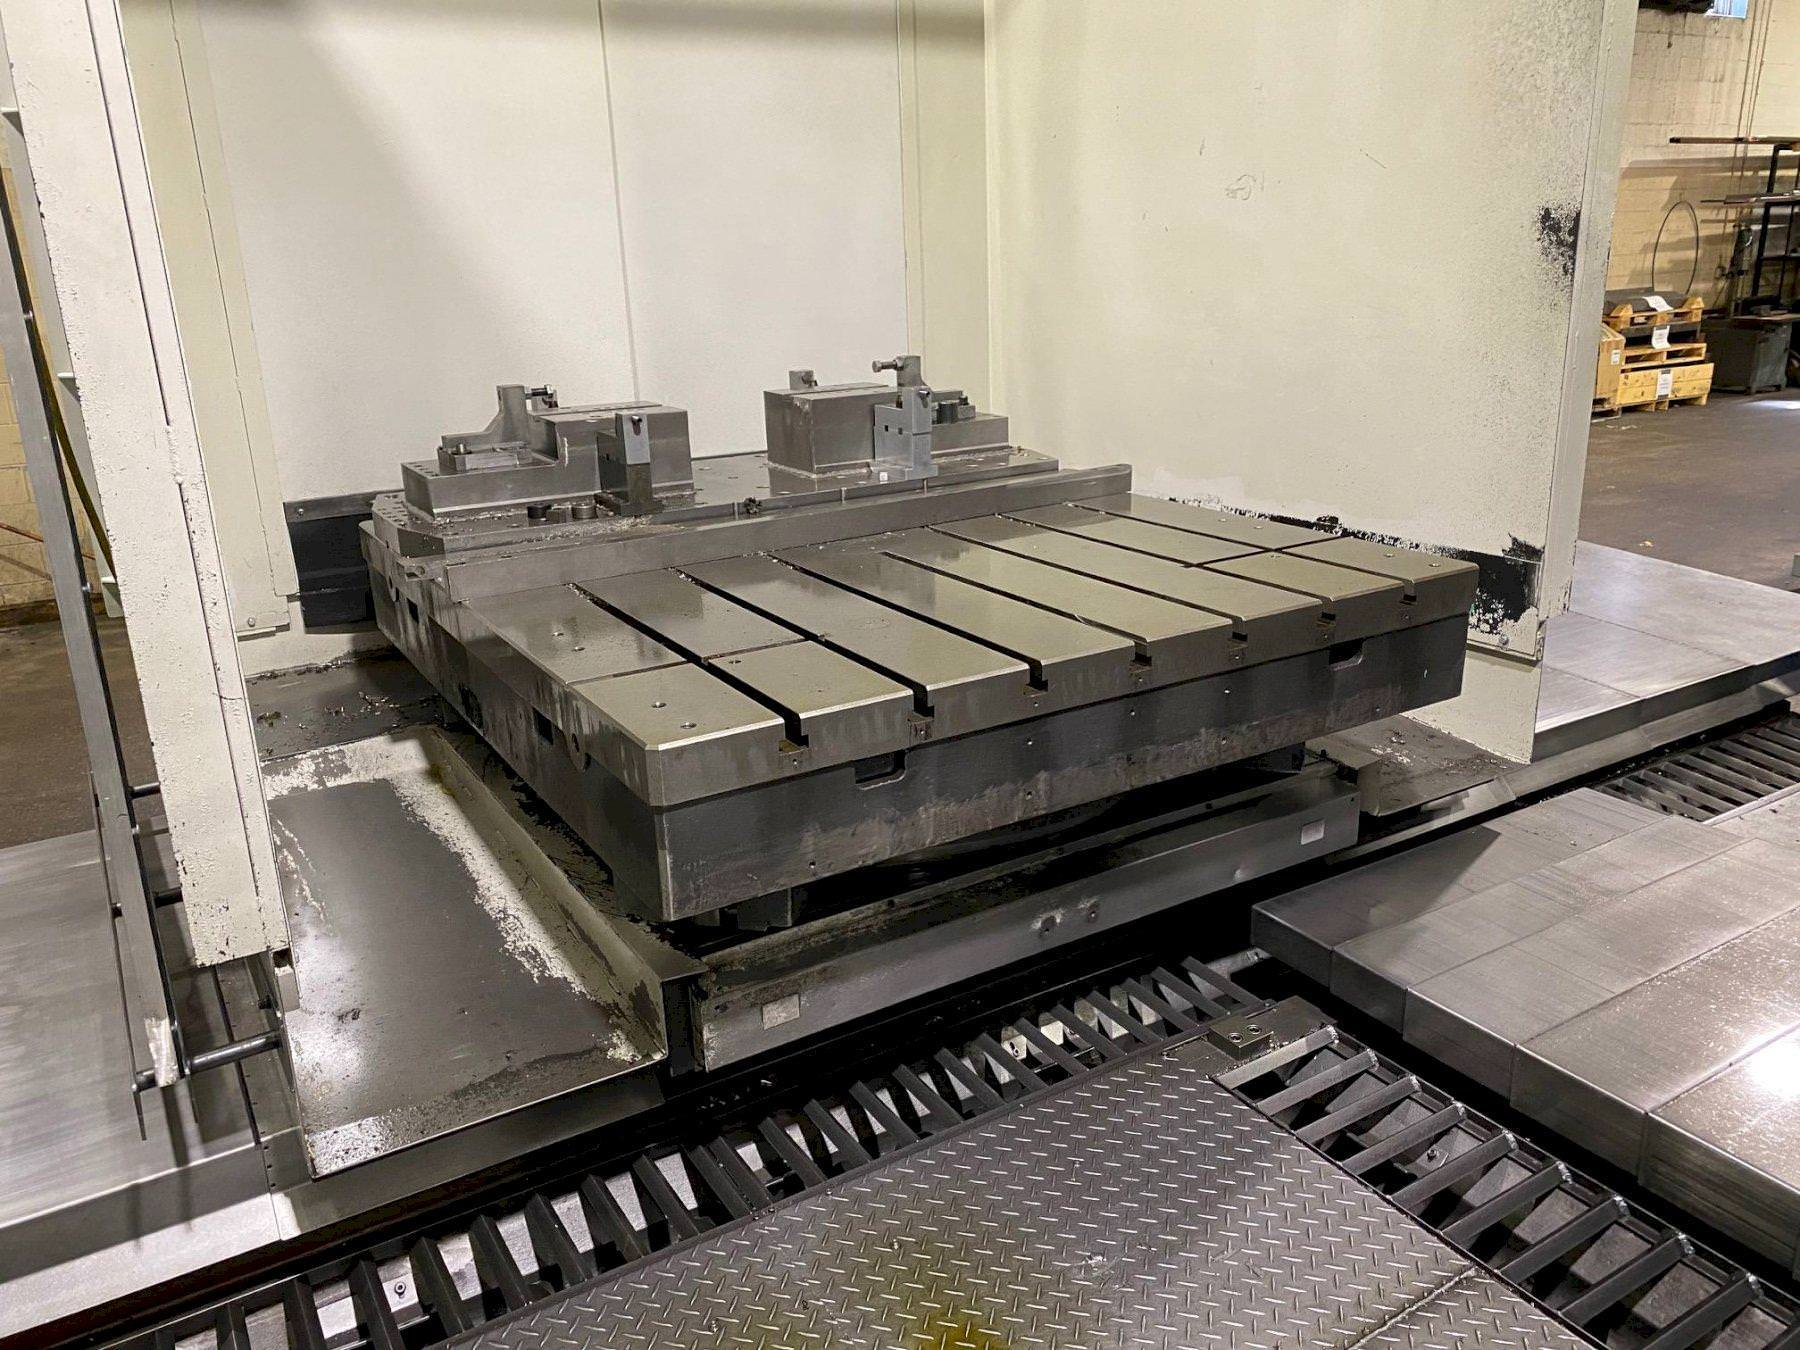 """SNK NISSIN BP130/3.0, 5.12"""" Spindle, X-118"""", Y-78"""", B-Axis Rotary, 60-ATC, Fanuc 16i-MB, 2008 #30968"""